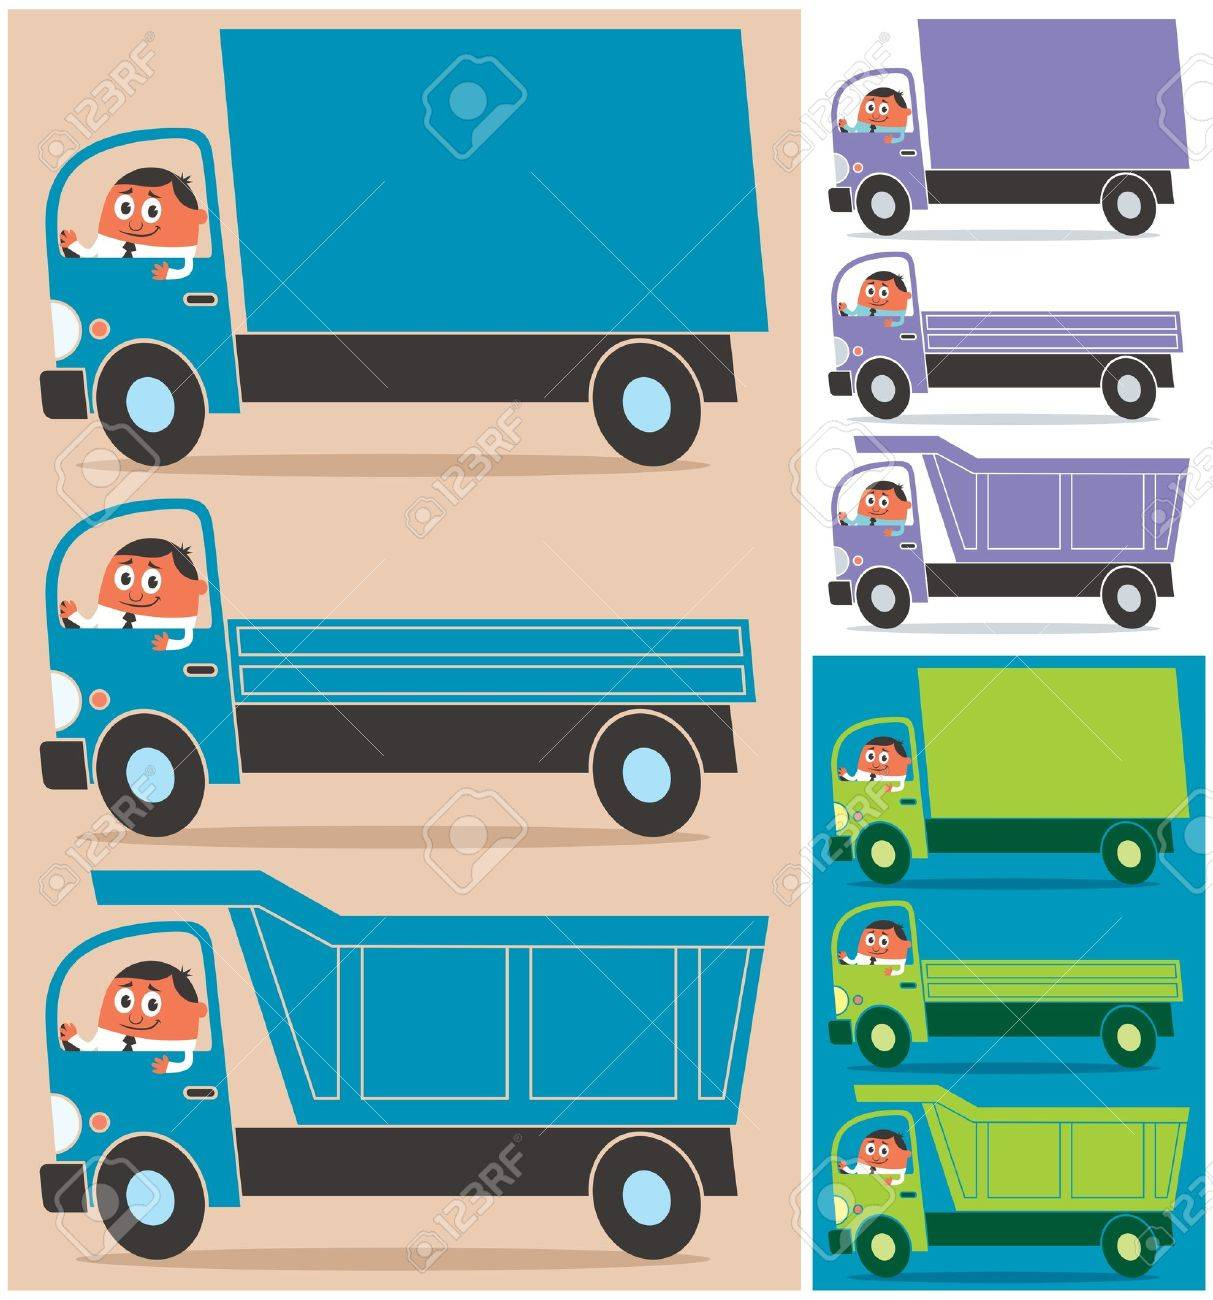 Cartoon character driving 3 types of trucks. Each truck is in 3 color versions. No transparency and gradients used. Stock Vector - 14477777